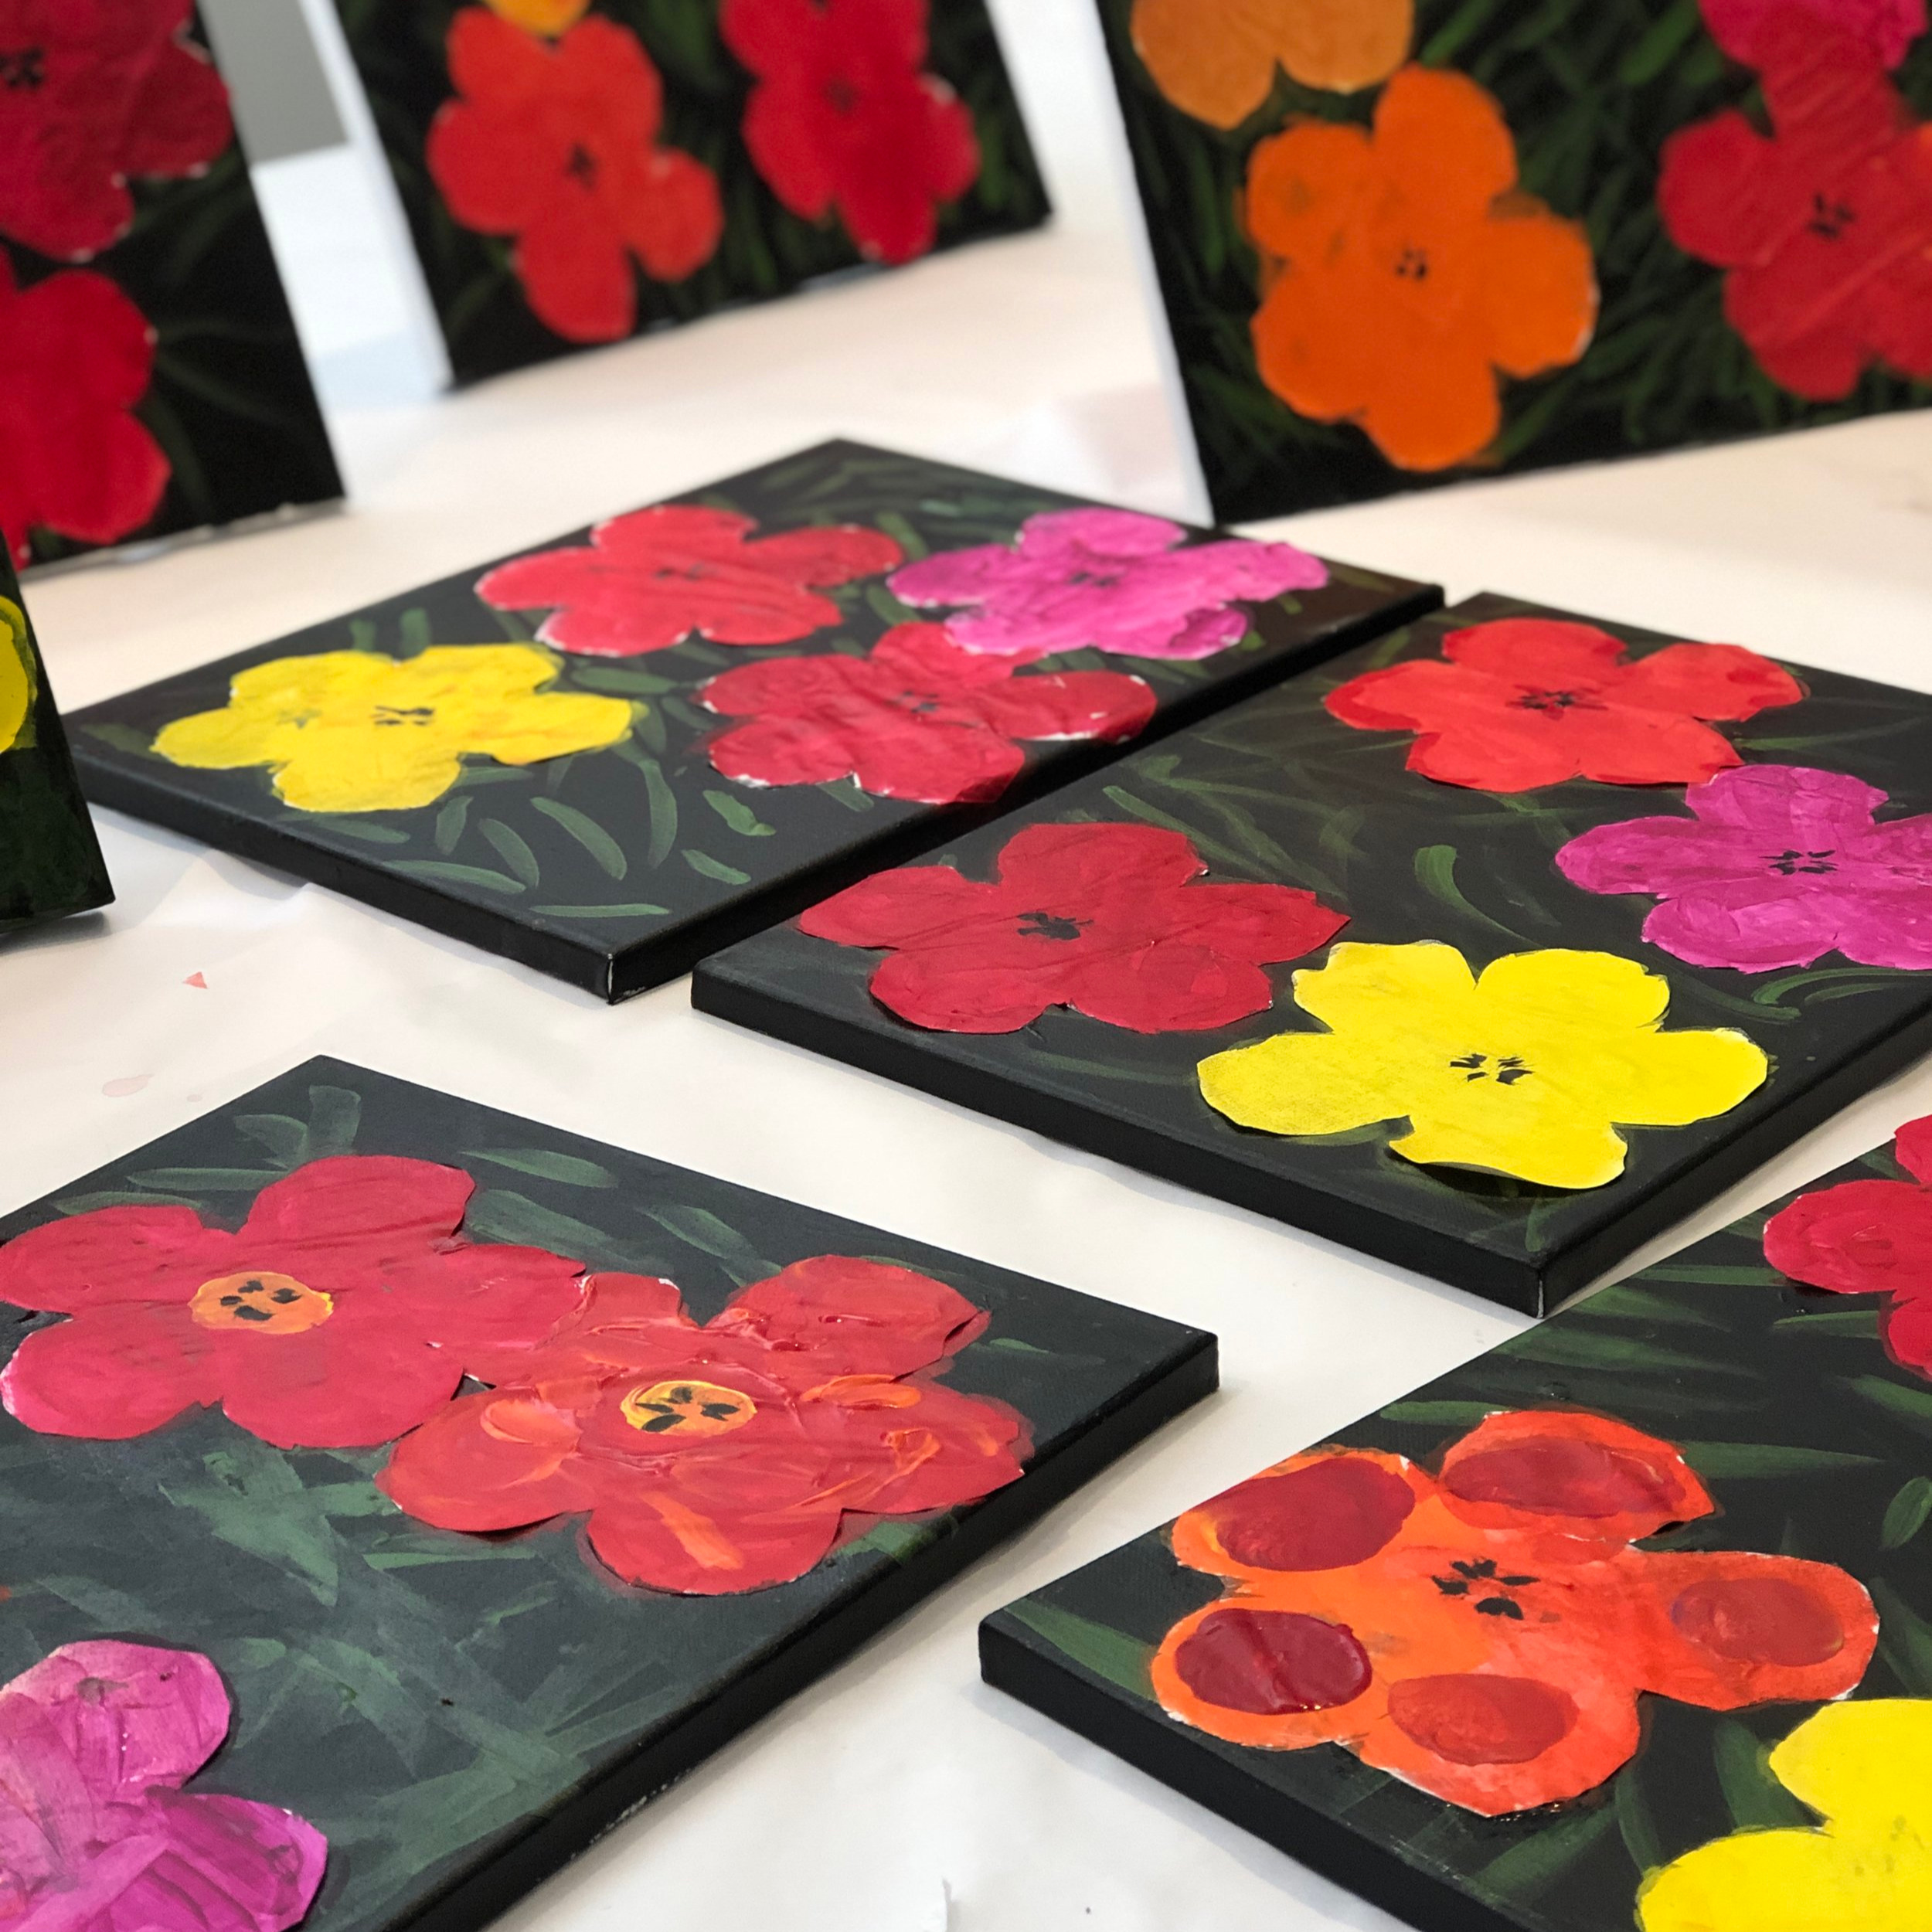 Andy Warhol-inspired flowers.